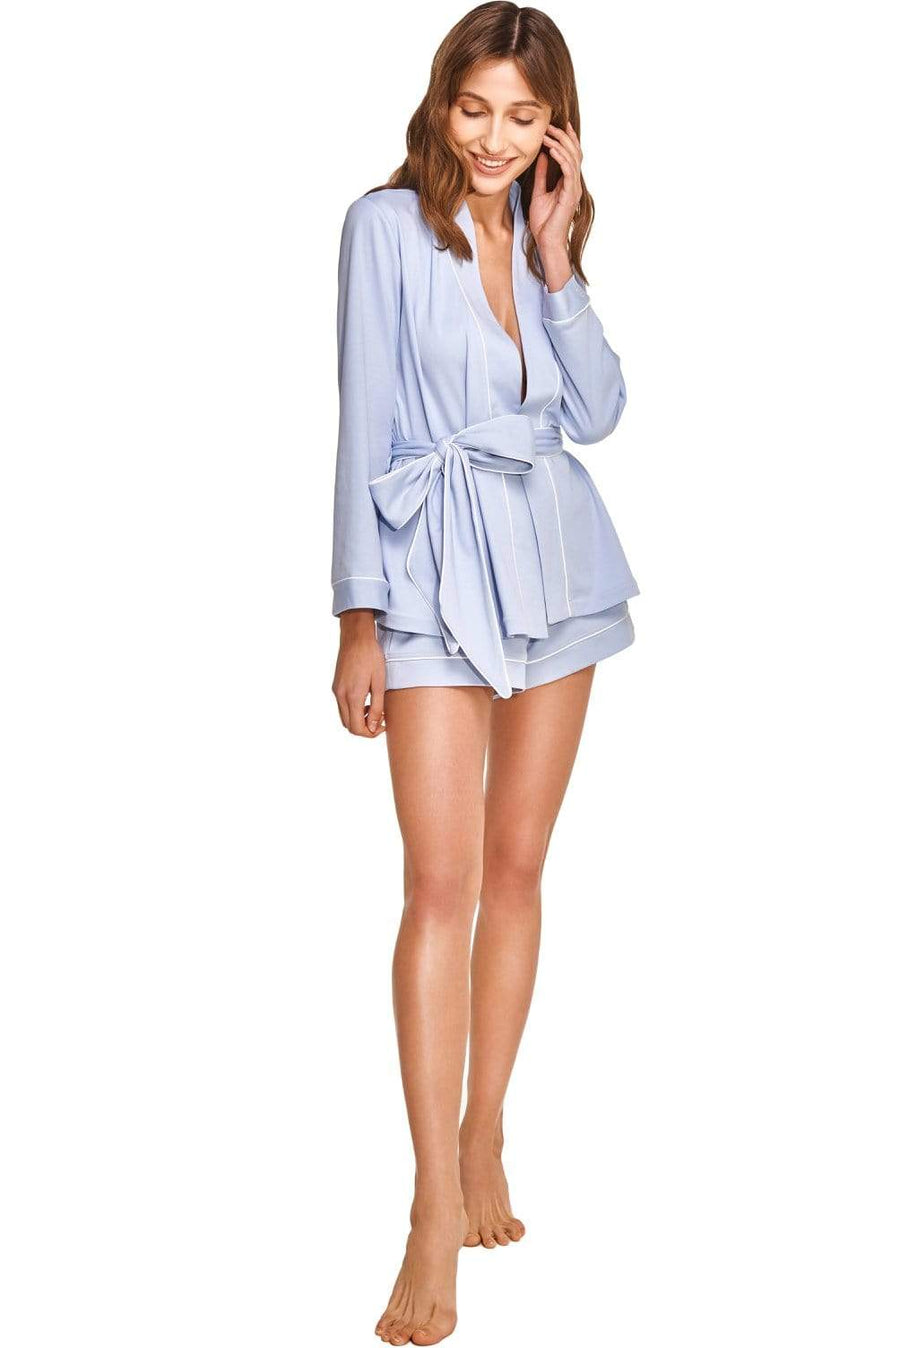 Slow Nature® Essentials Sleep & Loungewear LIMA three-piece sleep and loungewear set. Organic Pima Cotton. sustainable fashion ethical fashion